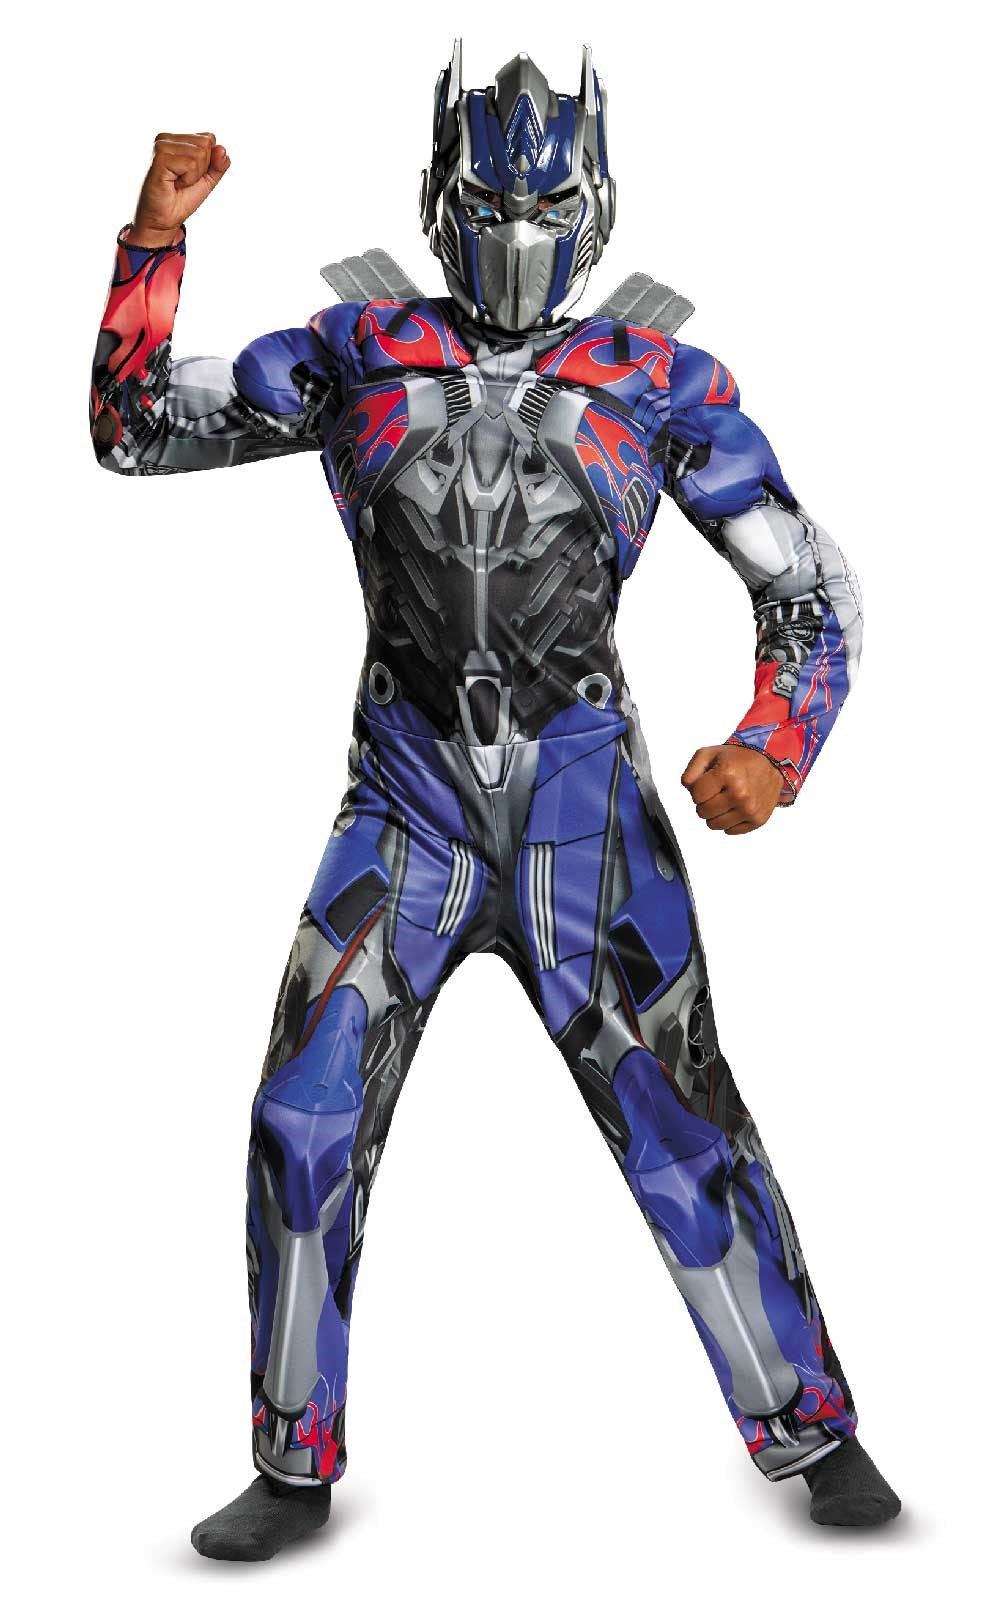 Transformers 4 Age of Extinction Optimus Prime Muscle Child Costume Small (4-6)